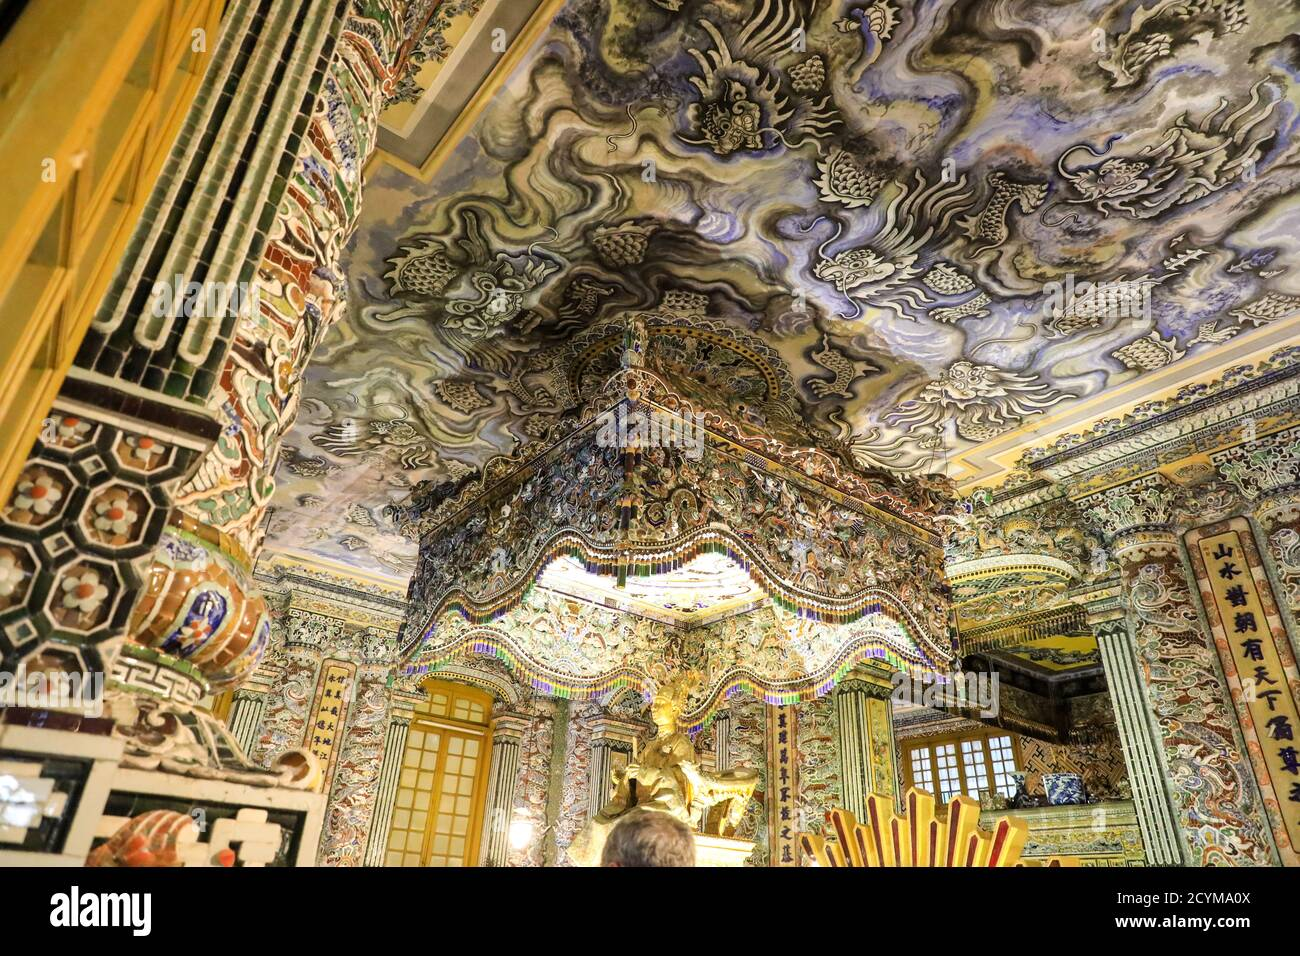 the-decorative-ornate-interior-and-ceiling-of-the-mausoleum-of-emperor-khai-dinh-royal-tomb-hue-vietnam-asia-2CYMA0X.jpg